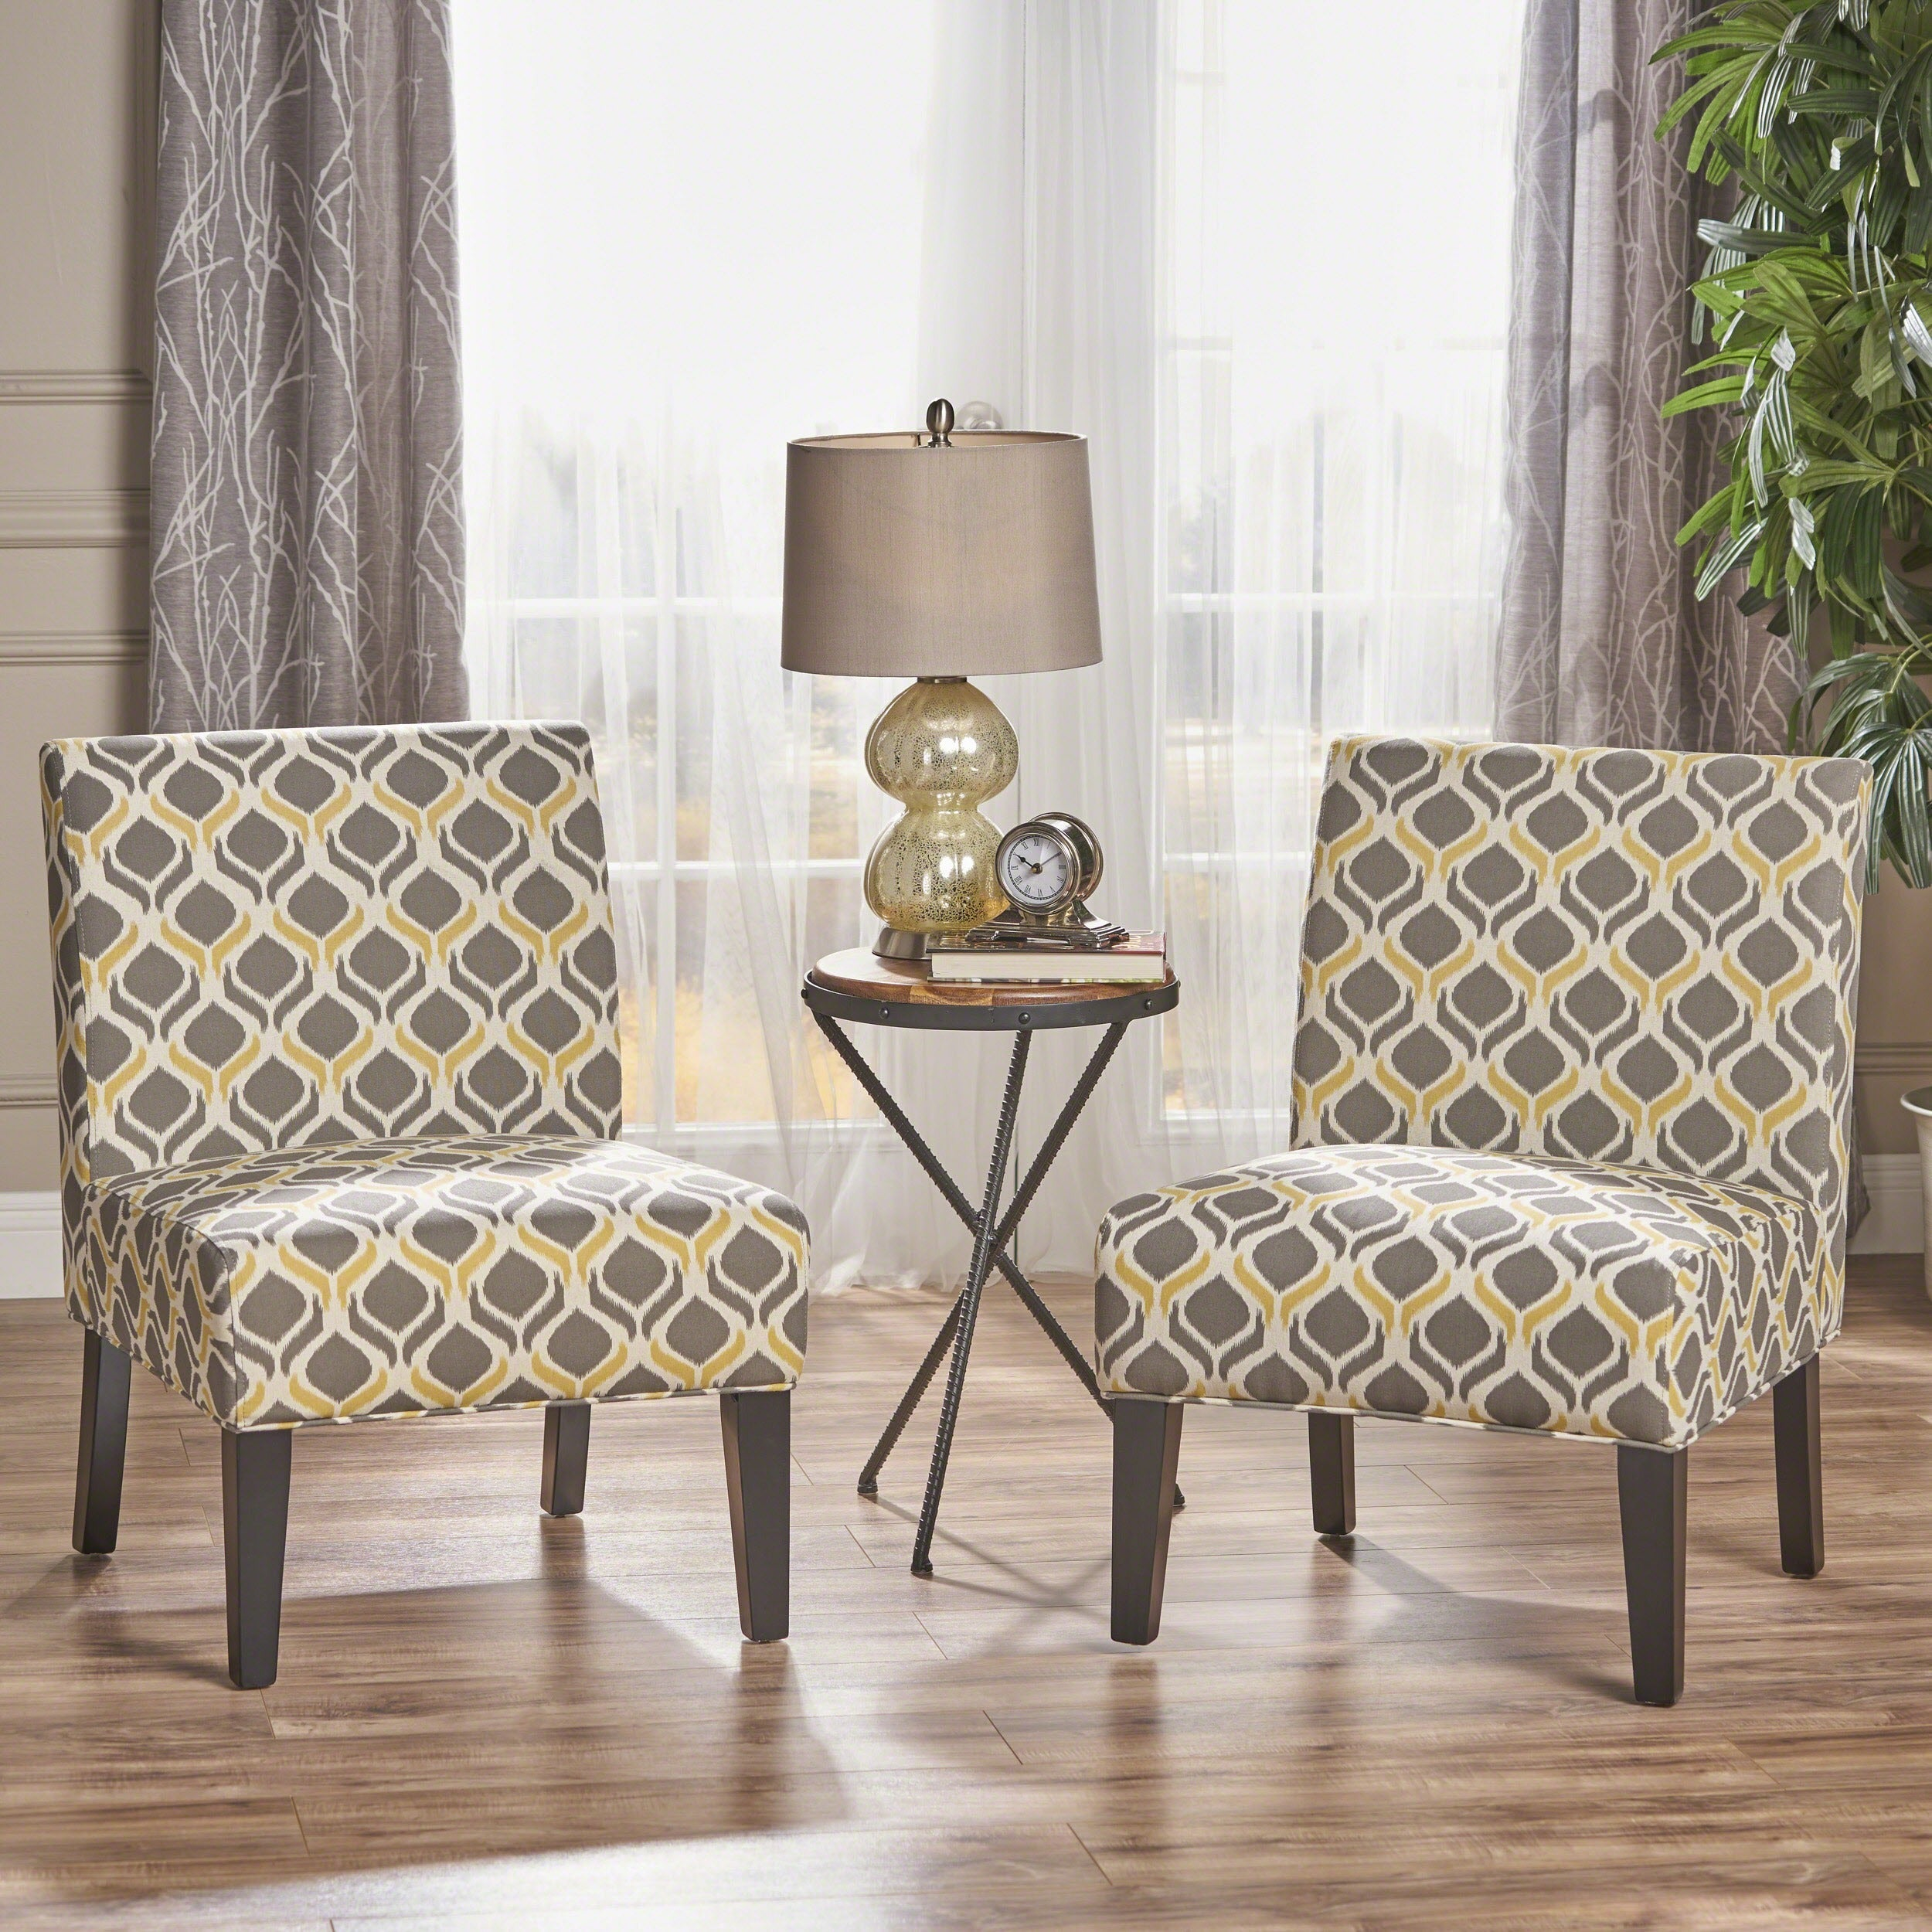 Accent Chairs For Living Room Set Of 2 Soft Sturdy Armless